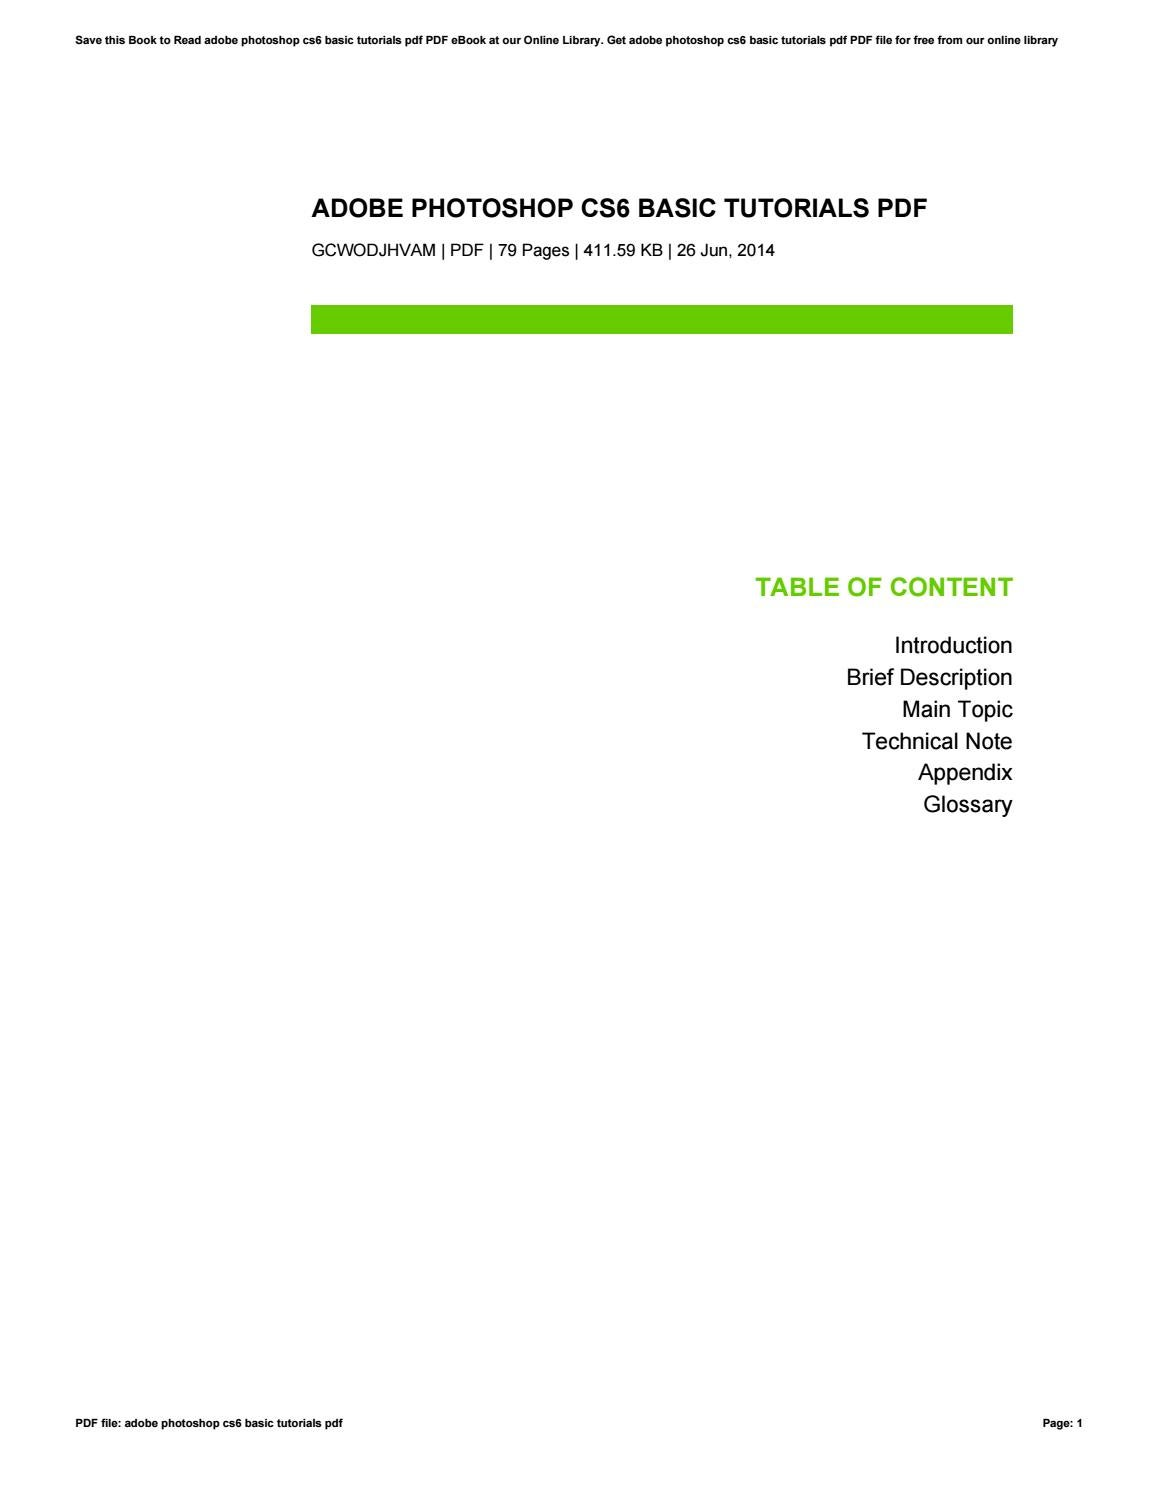 Photoshop cs6 tutorial pdf adobe